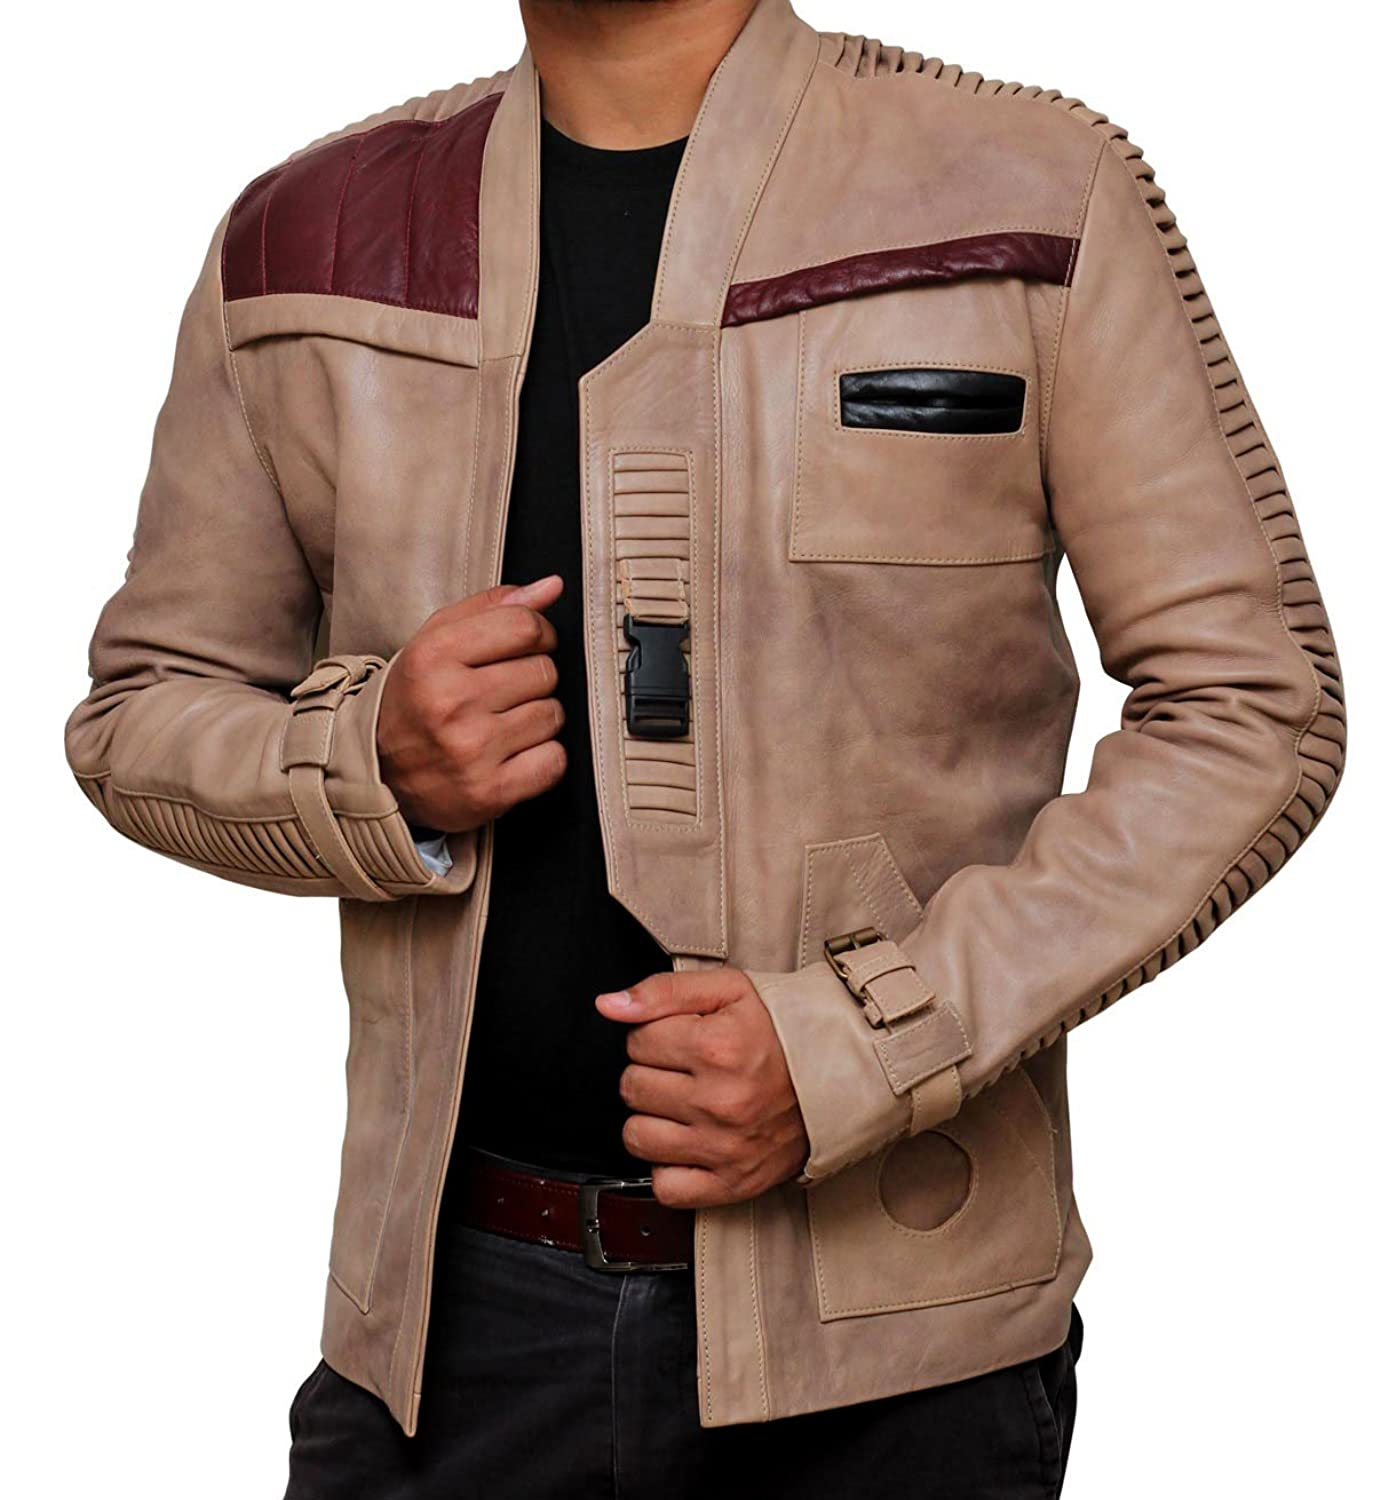 Leather jacket repair vancouver - Star Wars Poe Dameron Finn Jacket Real Leather At Amazon Men S Clothing Store